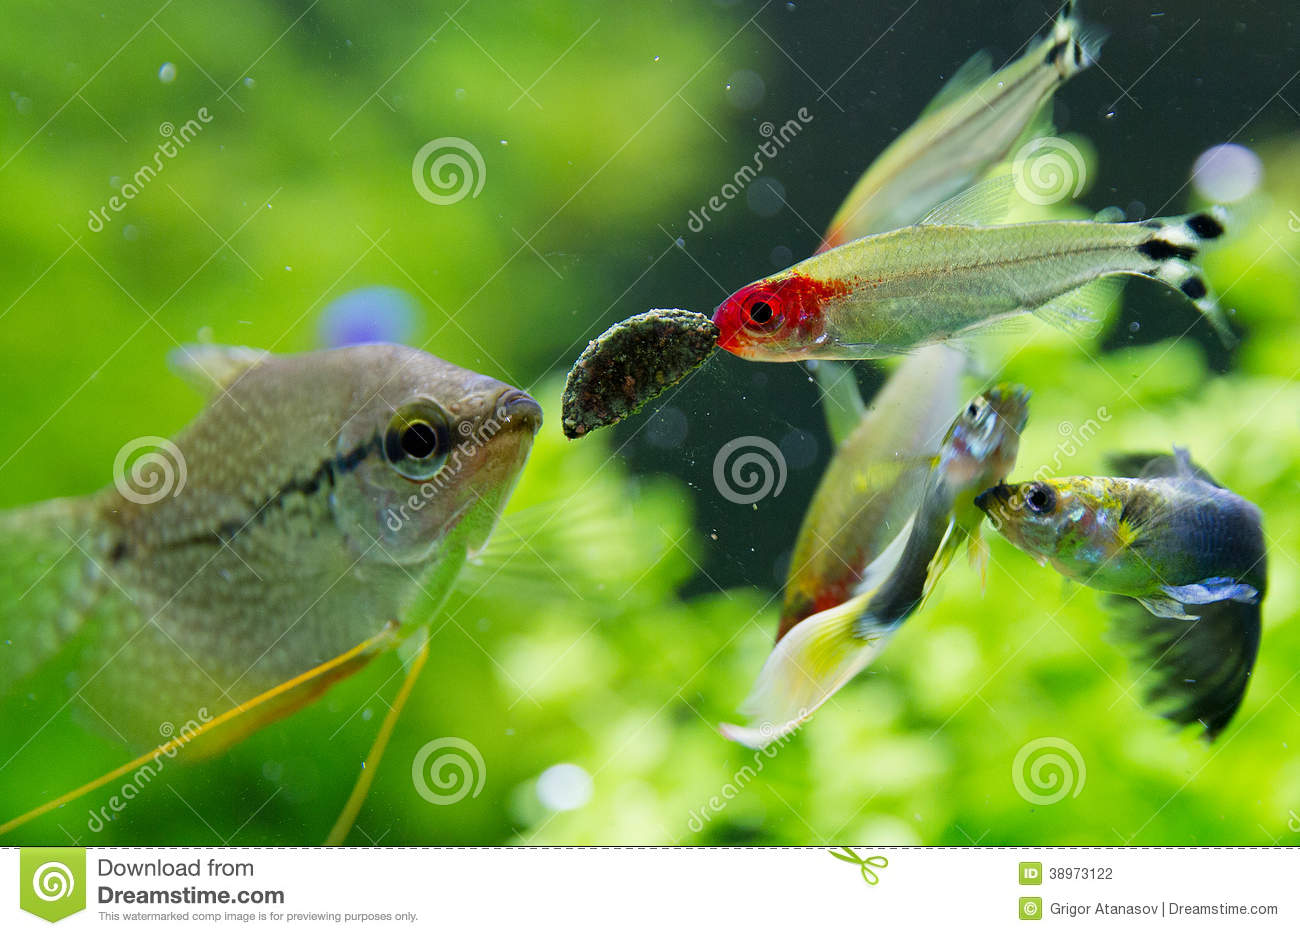 poissons exotiques dans l 39 aquarium d 39 eau douce photo stock image du centrales closeup 38973122. Black Bedroom Furniture Sets. Home Design Ideas